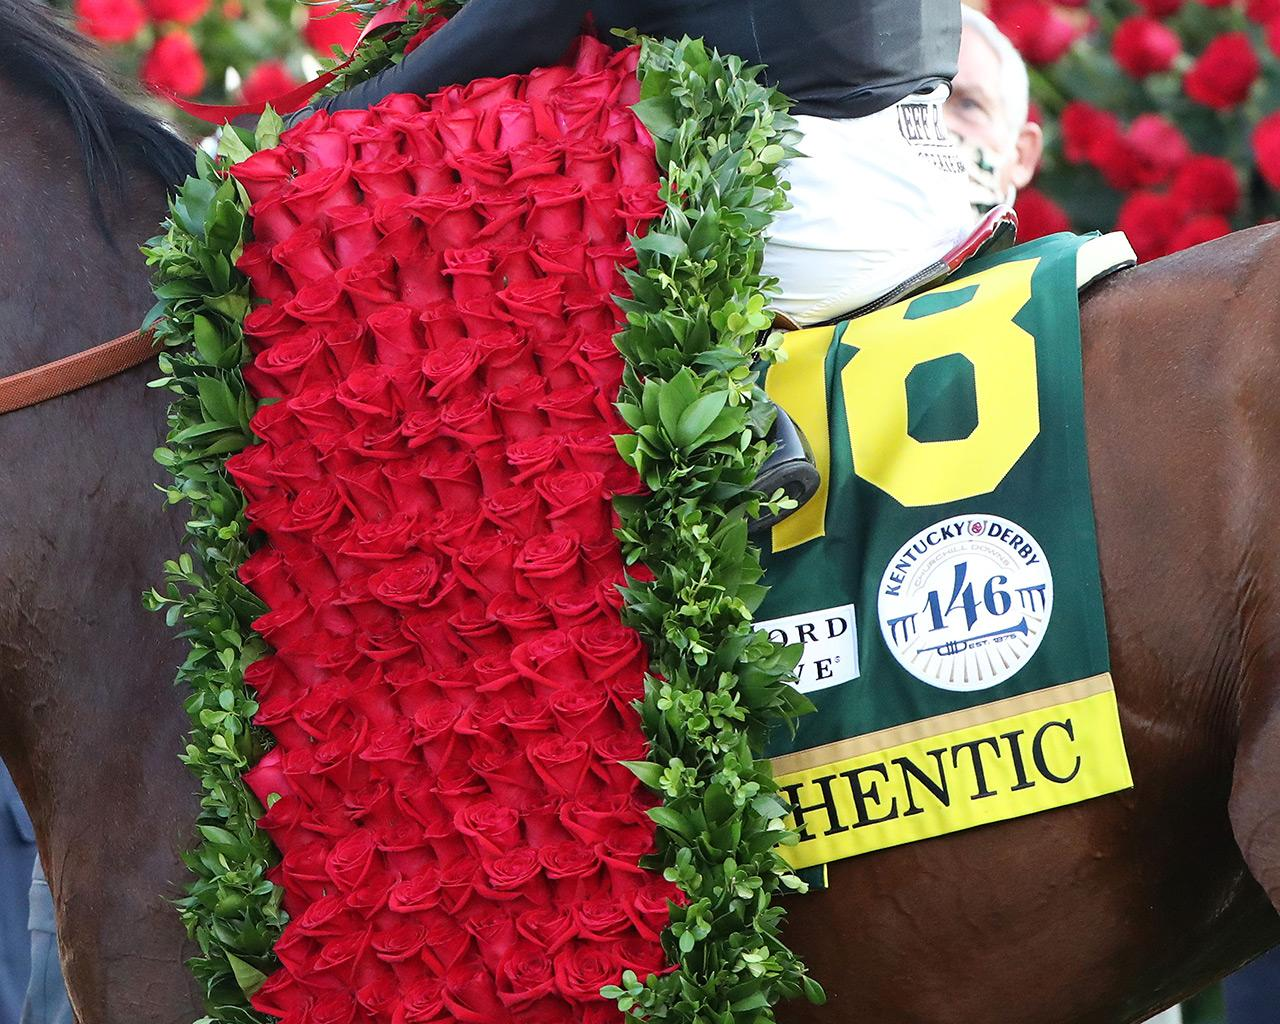 AUTHENTIC---The-Kentucky-Derby---146th-Running---09-05-20---R14---CD---Saddle-Towel-01